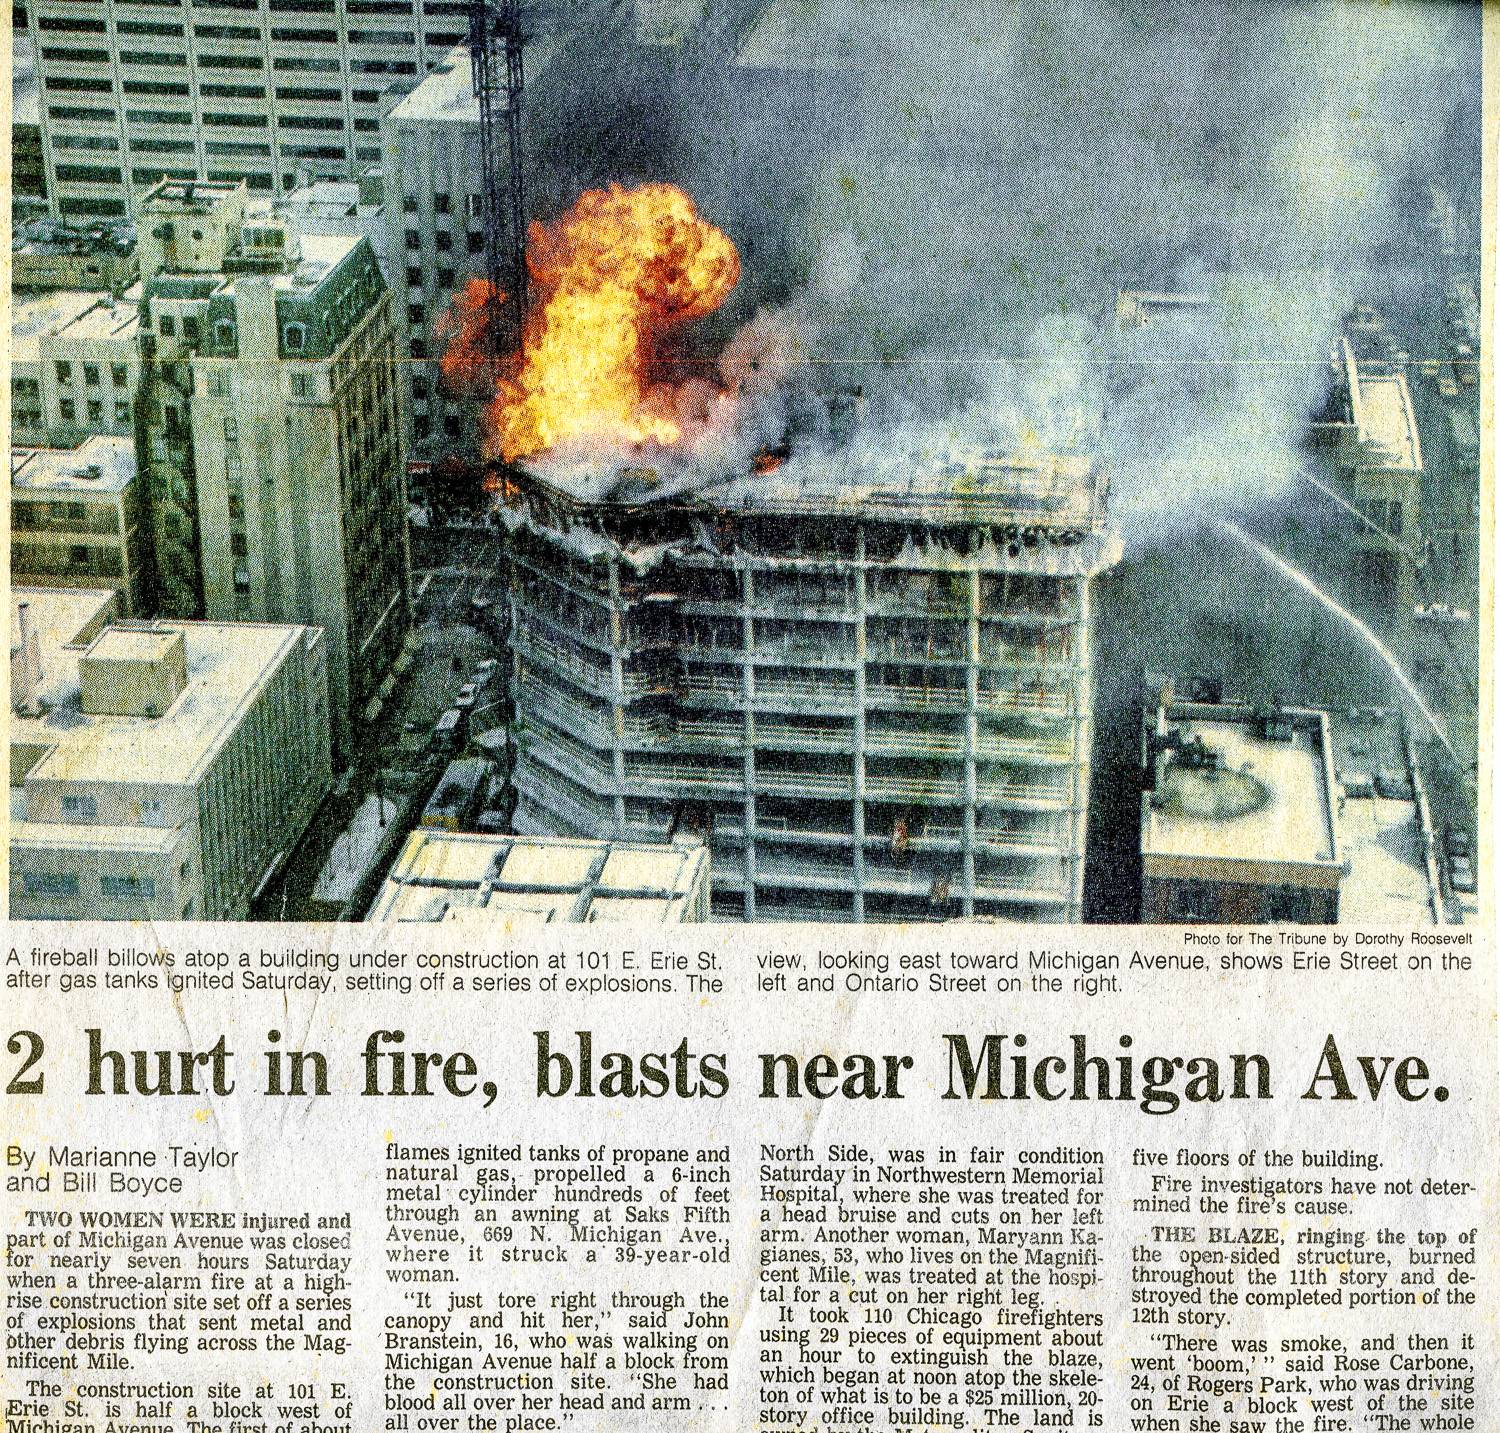 vintage Chicago fire scene news clipping